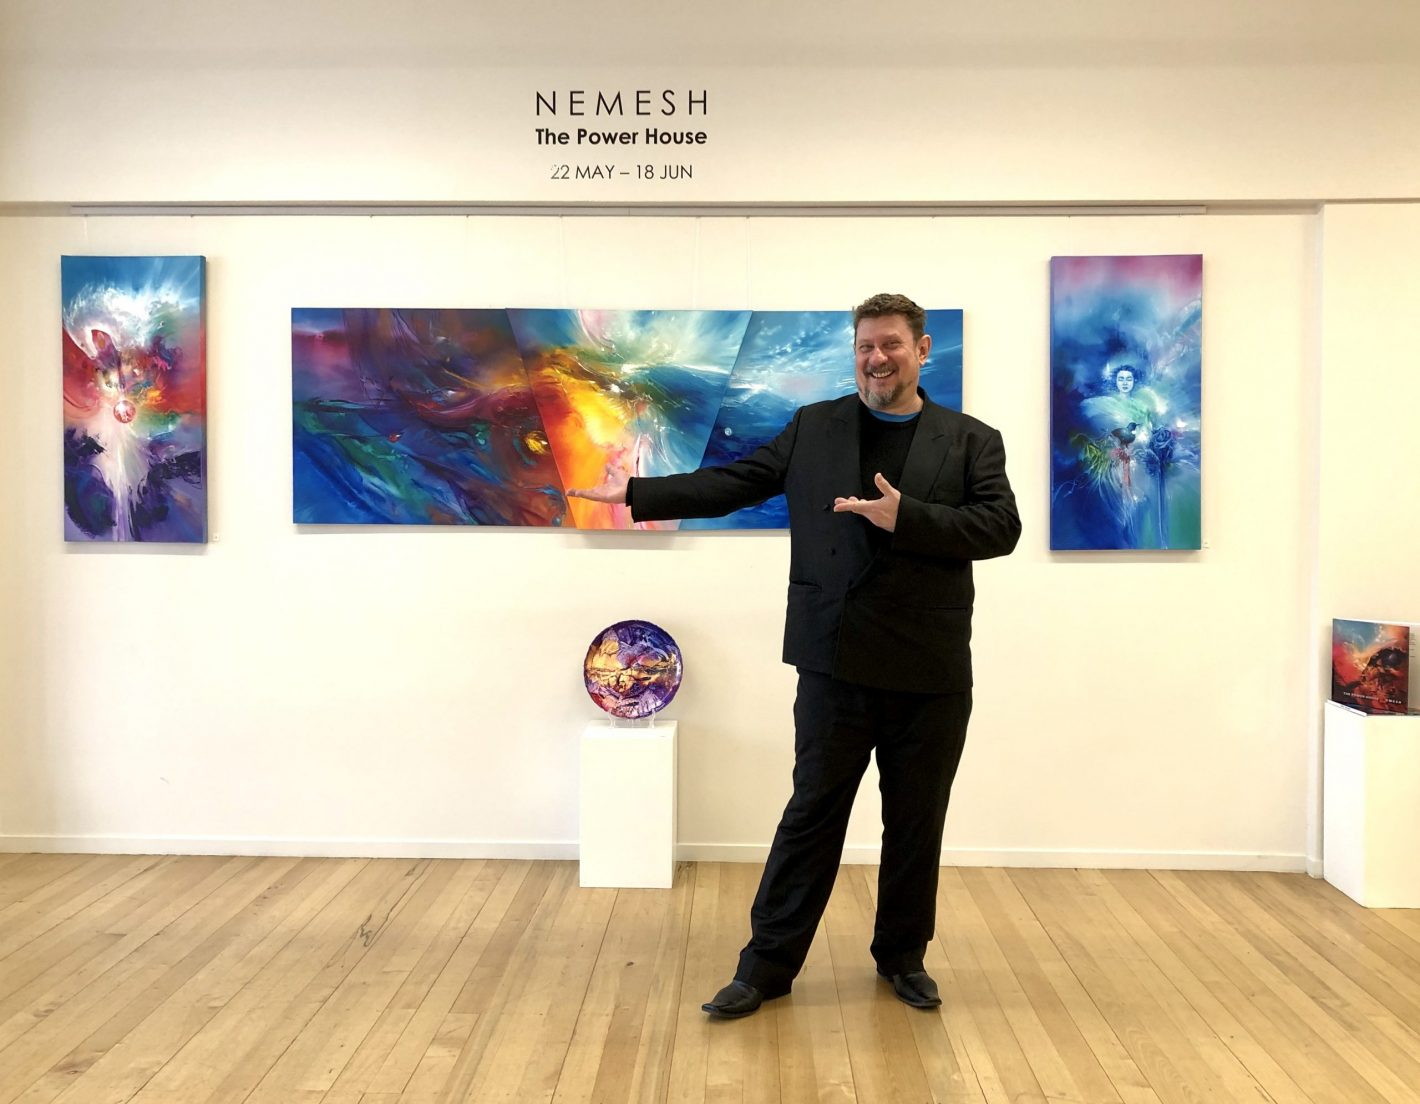 Nemesh at the Power House Exhibition Opening, May 2020.